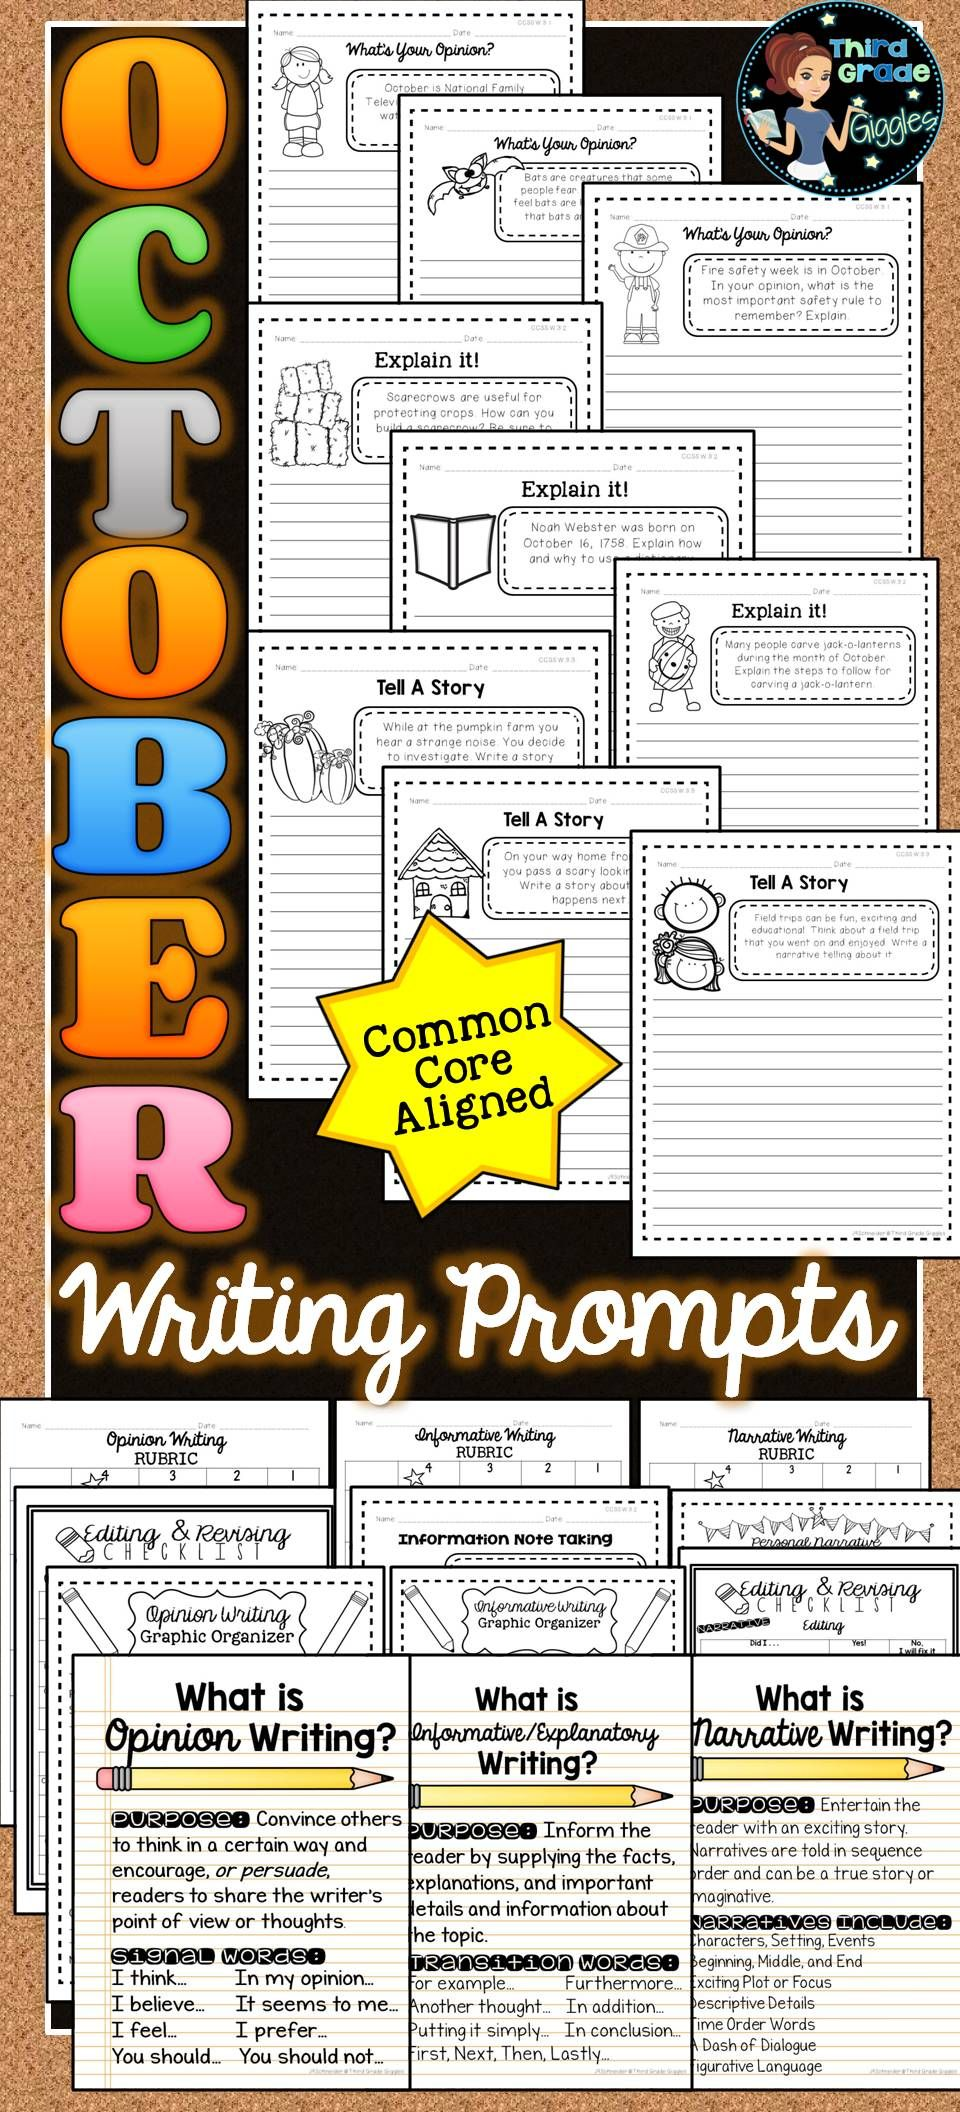 October Writing Prompts Activities (With images) October